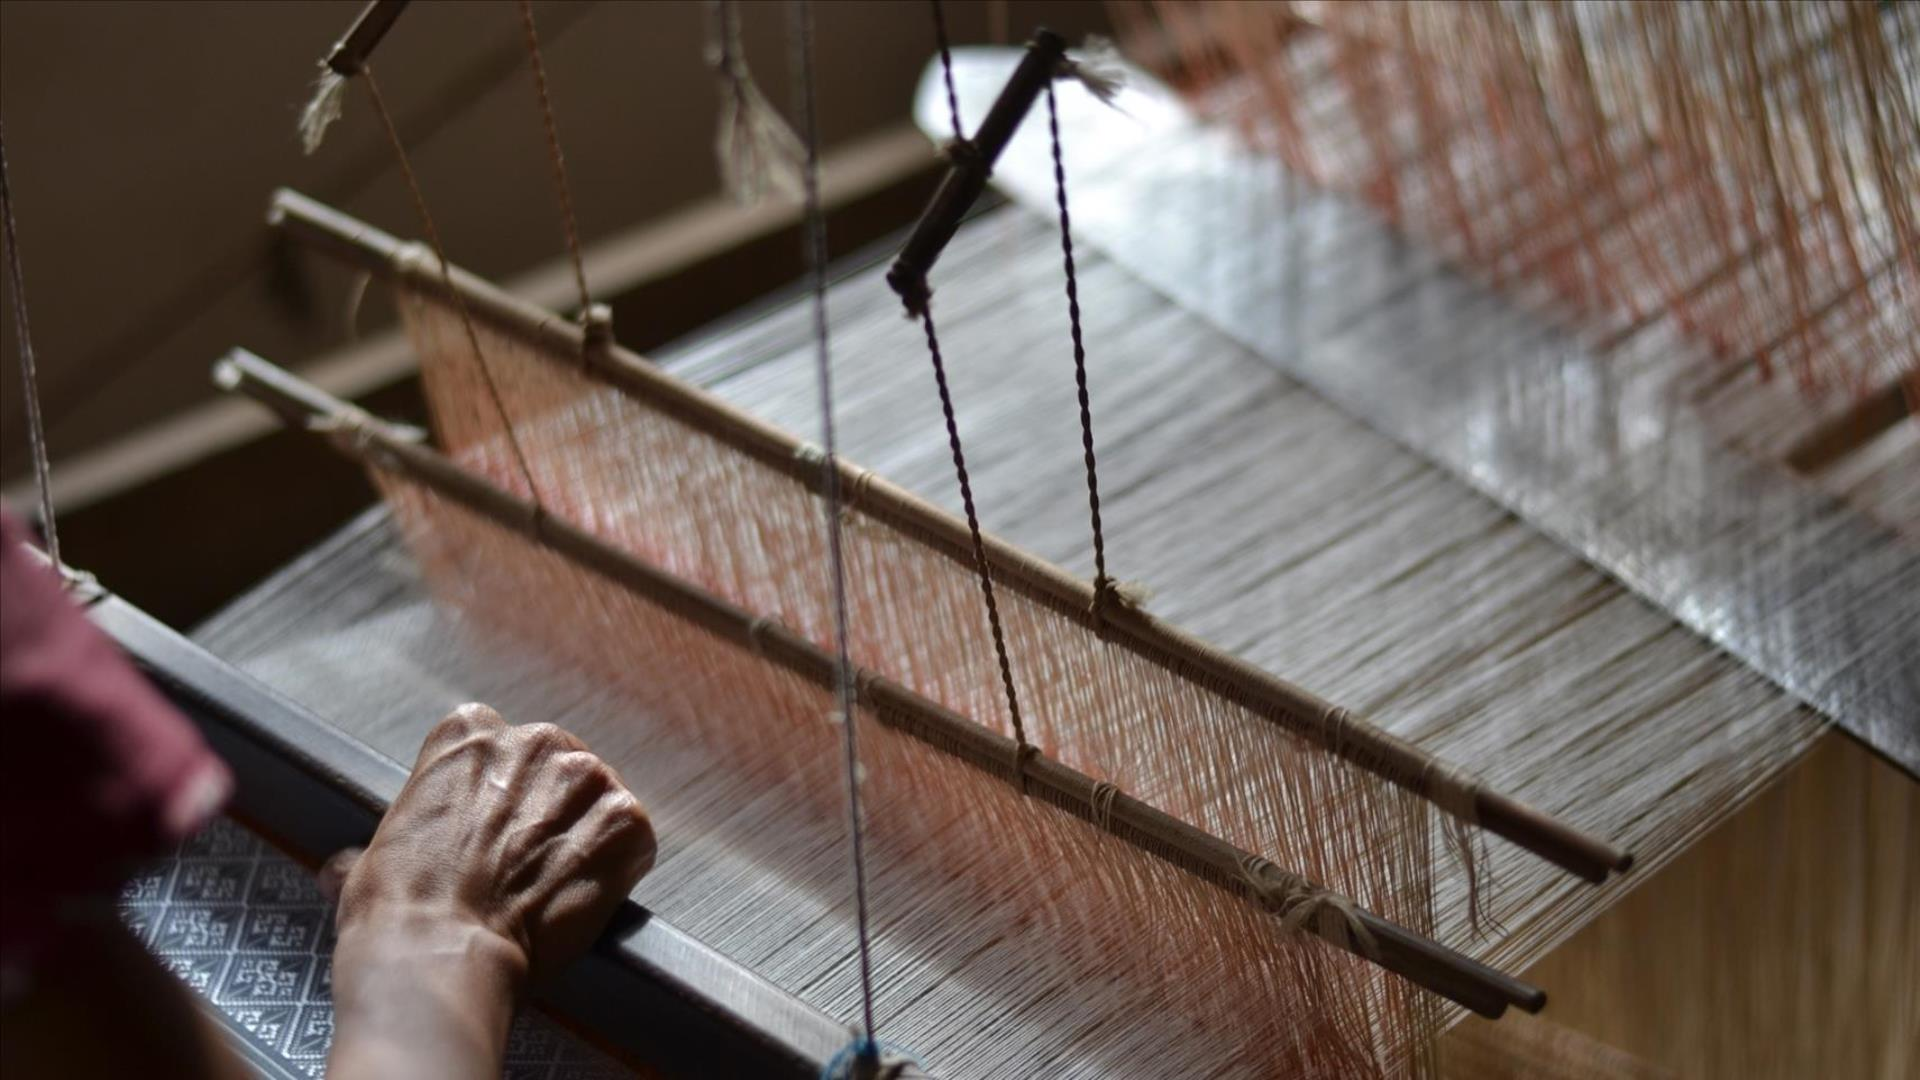 Laos, Nong Khiaw : Muang Ngoi Weaving Village -1 Day | Scenic Nam Ou river by boat to visit a weaving village